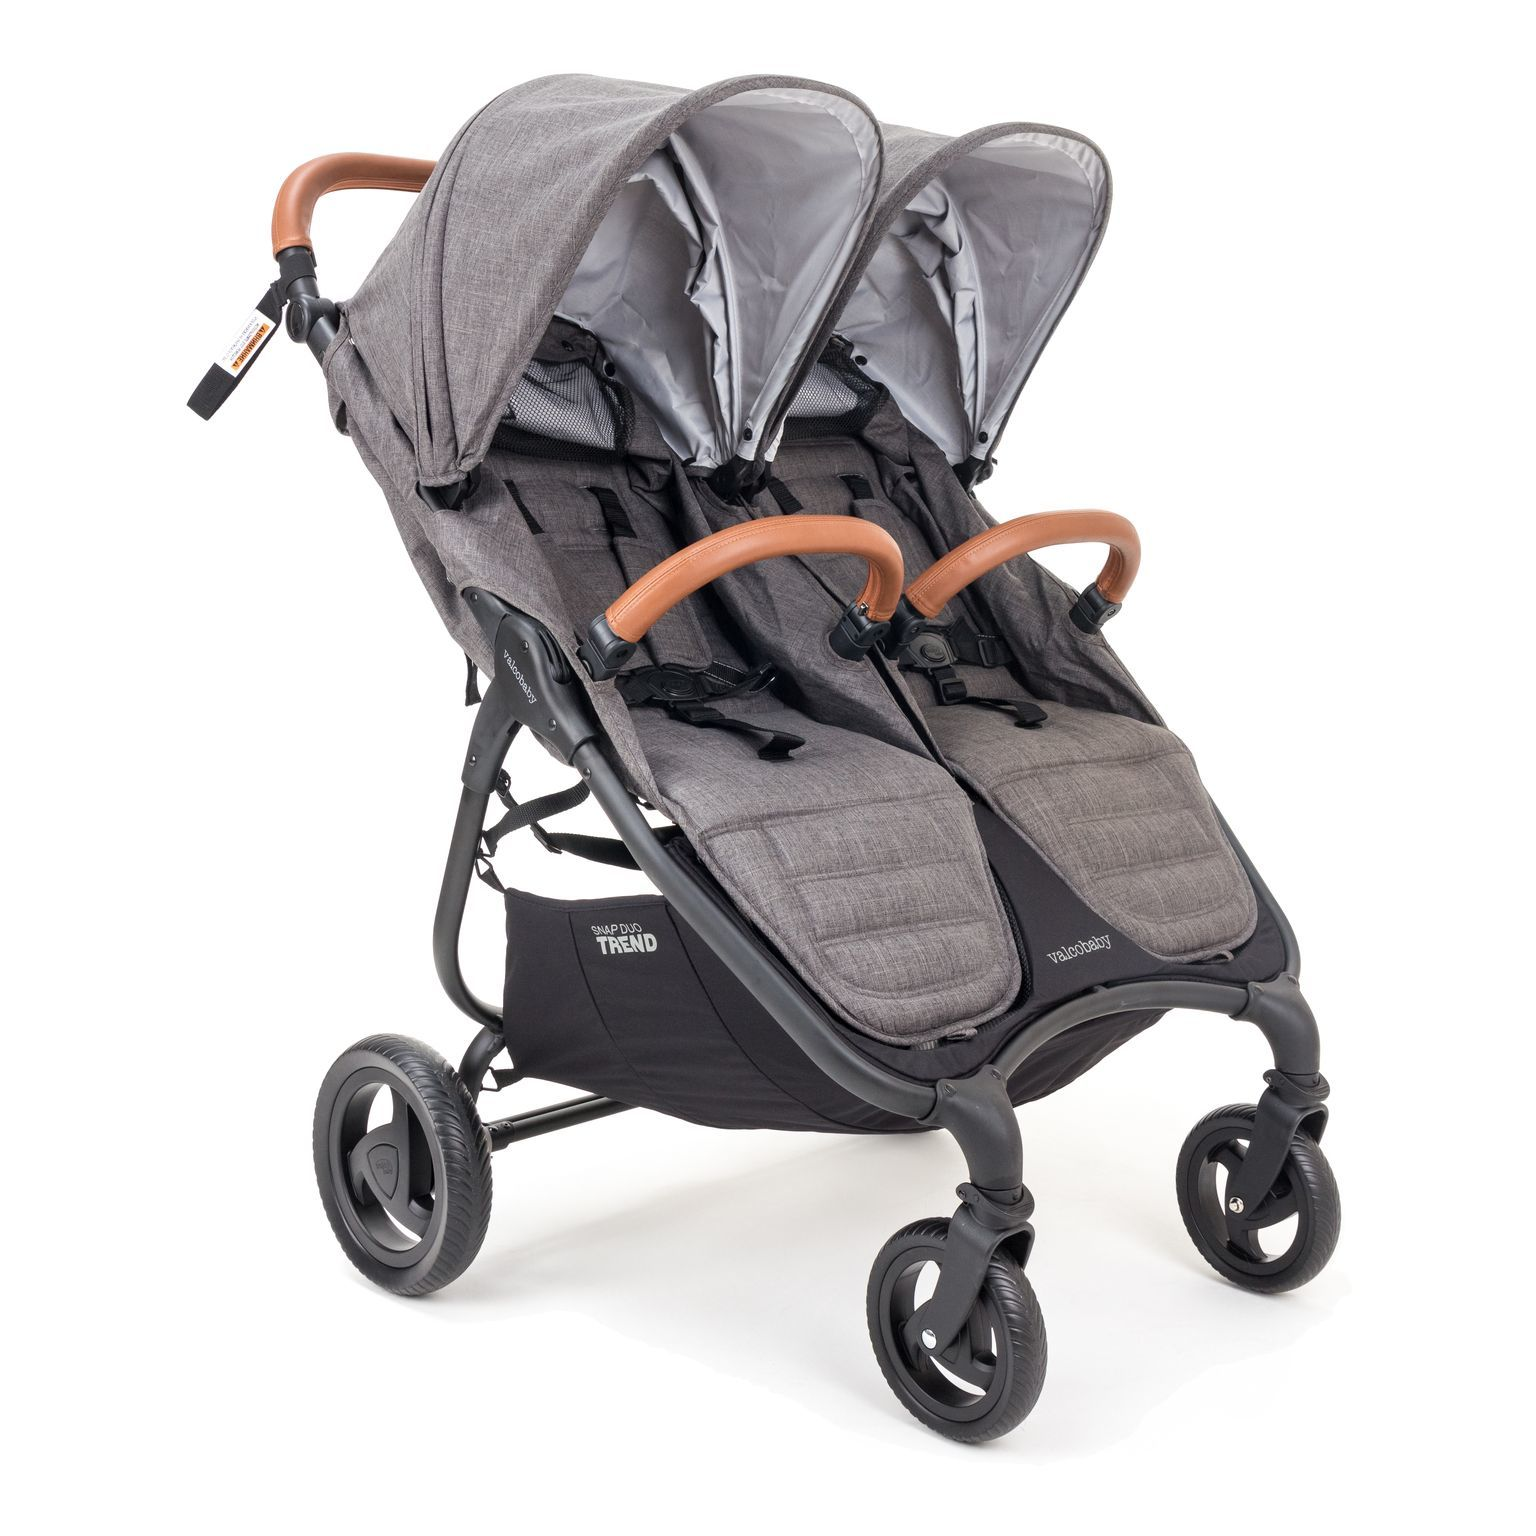 VALCO BABY SNAP DUO TREND VALCO BABY SNAP DUO TREND / 9939 -GniKUgk.jpeg